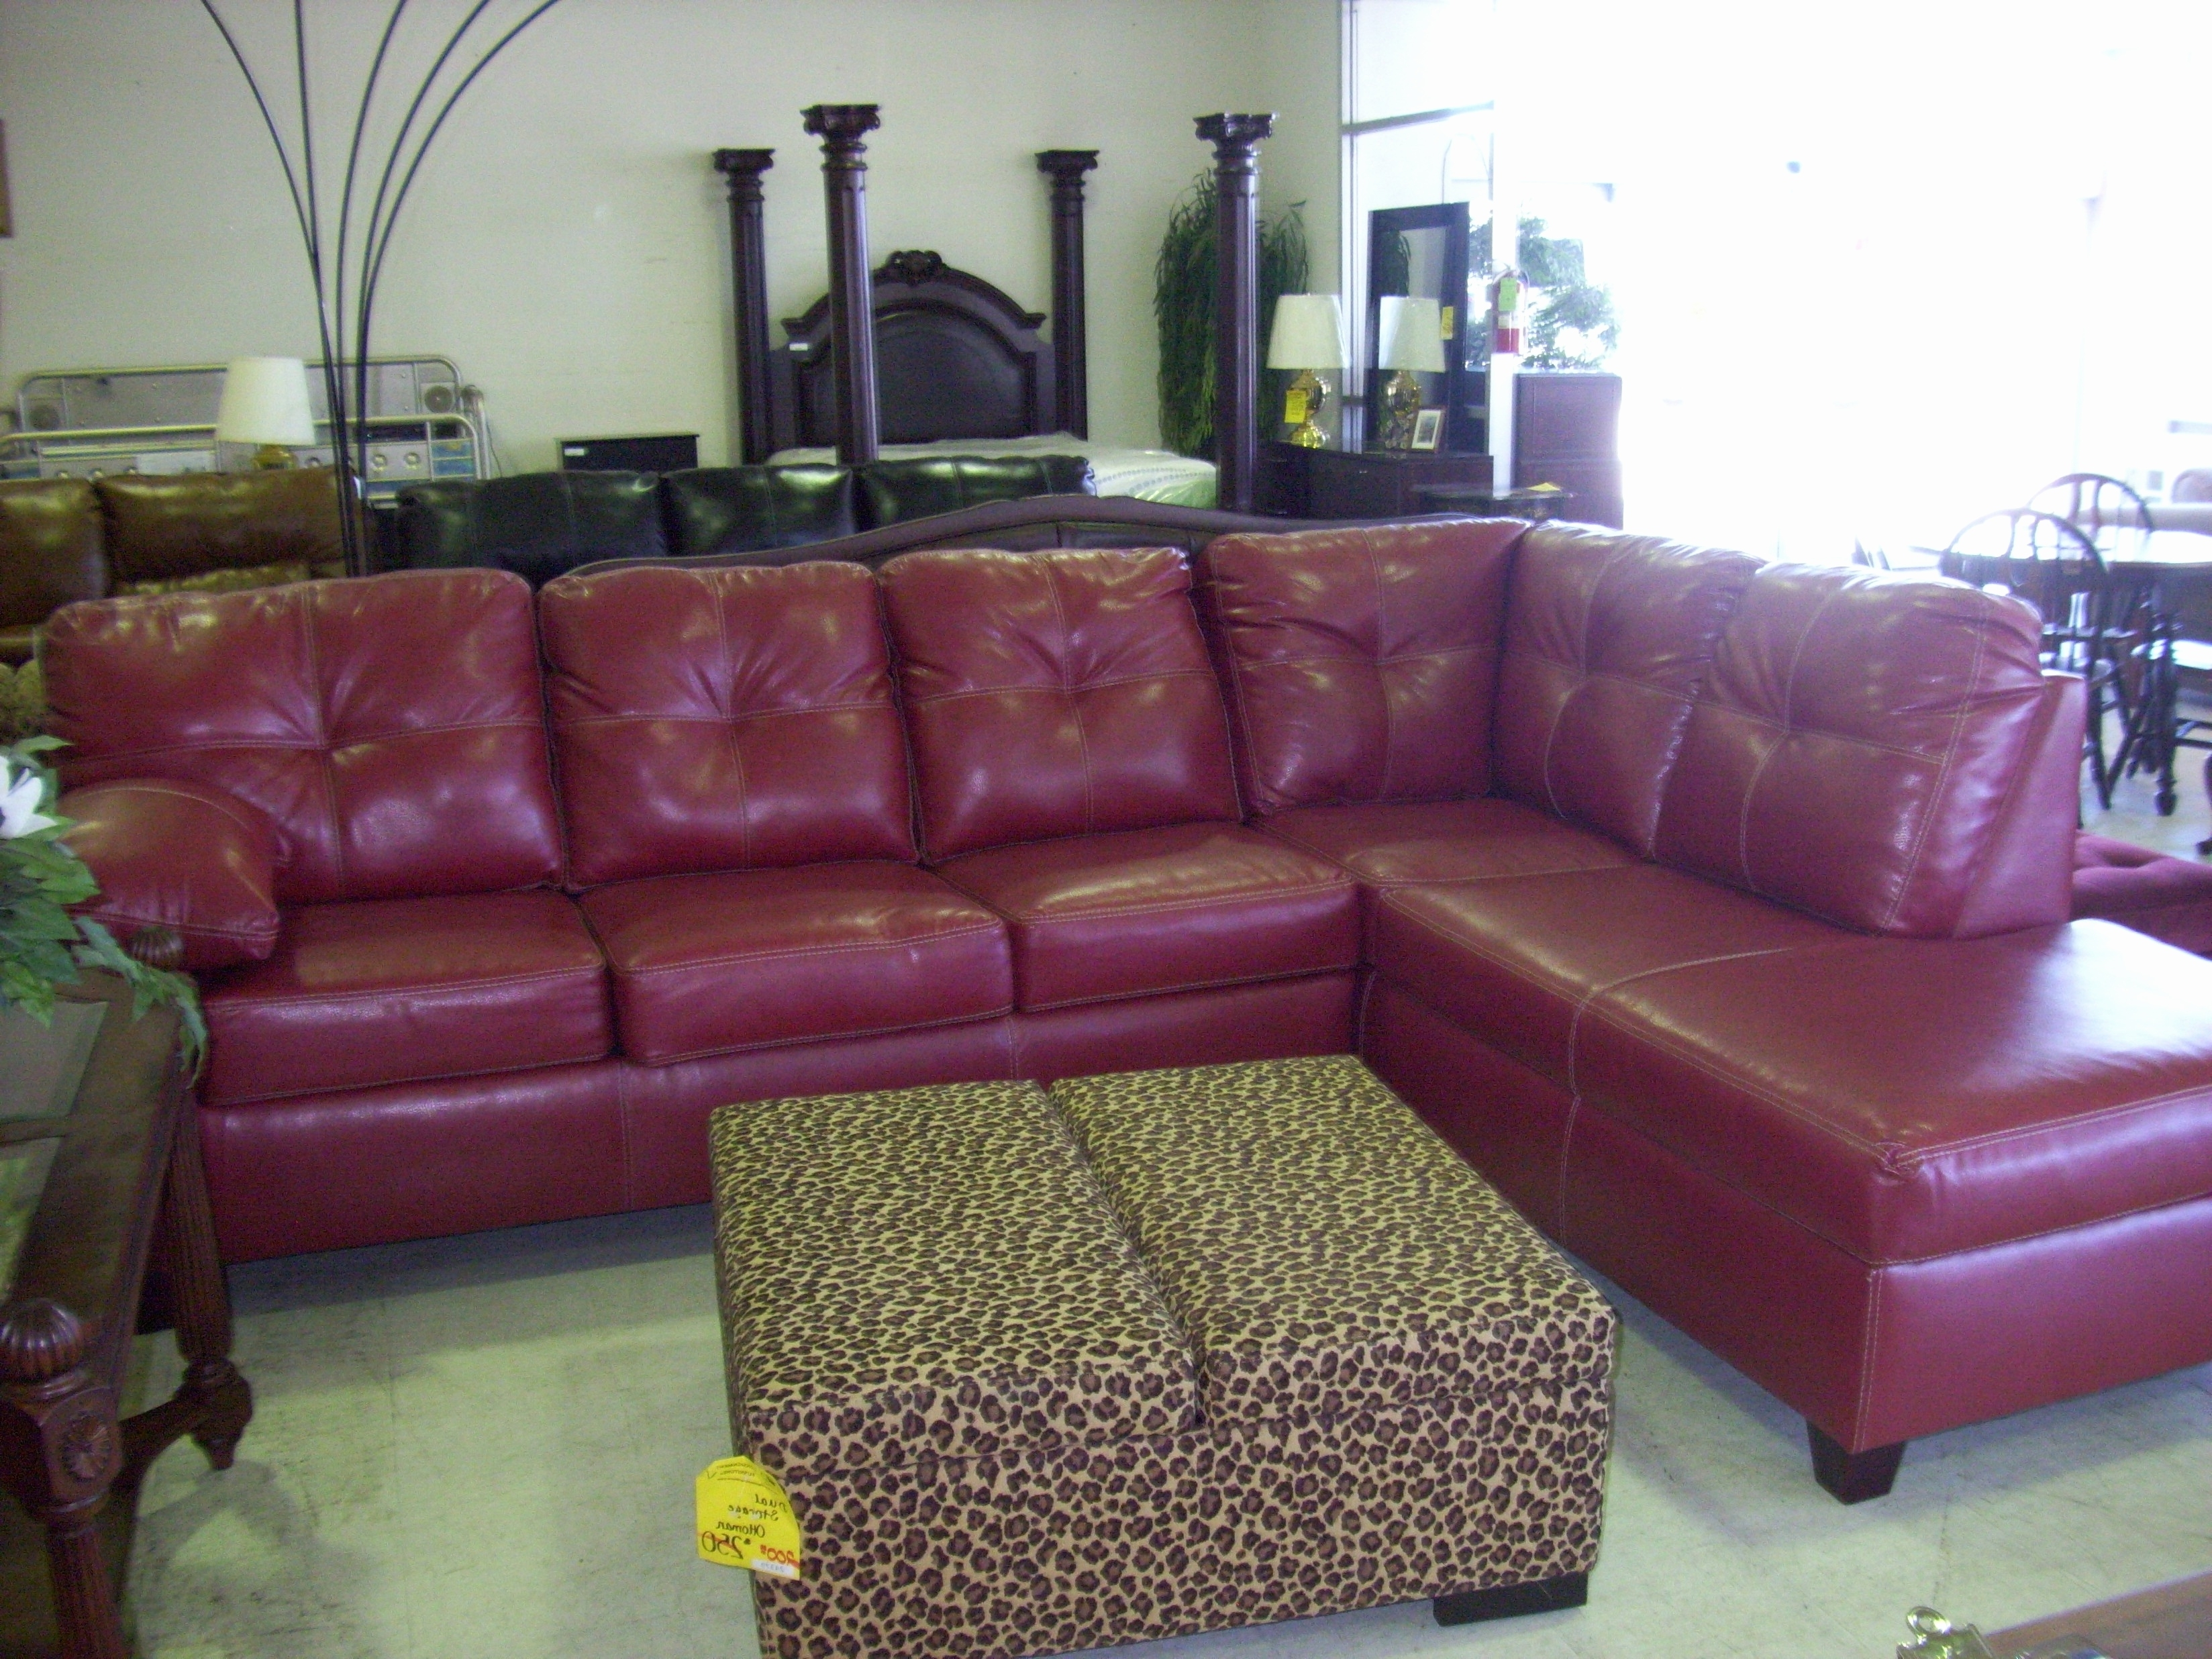 Red Leather Sectional Sofas With Ottoman With Regard To Widely Used Beautiful Ivory Tufted Leather Sectional Sofa And Ottoman  (View 13 of 15)